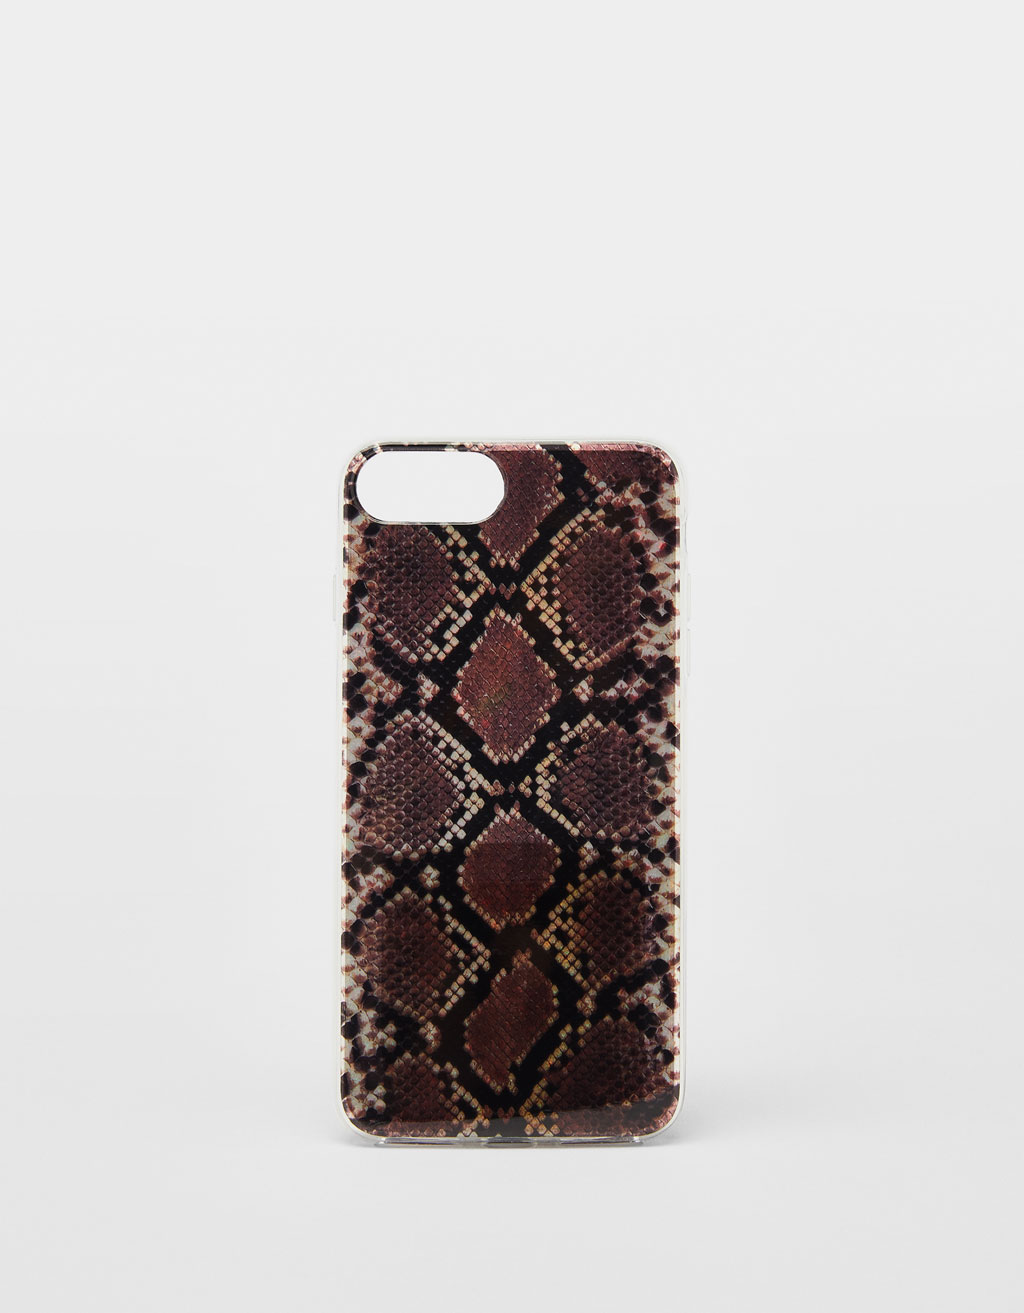 Carcasa Serpiente iPhone 6 plus / 7 plus / 8 plus